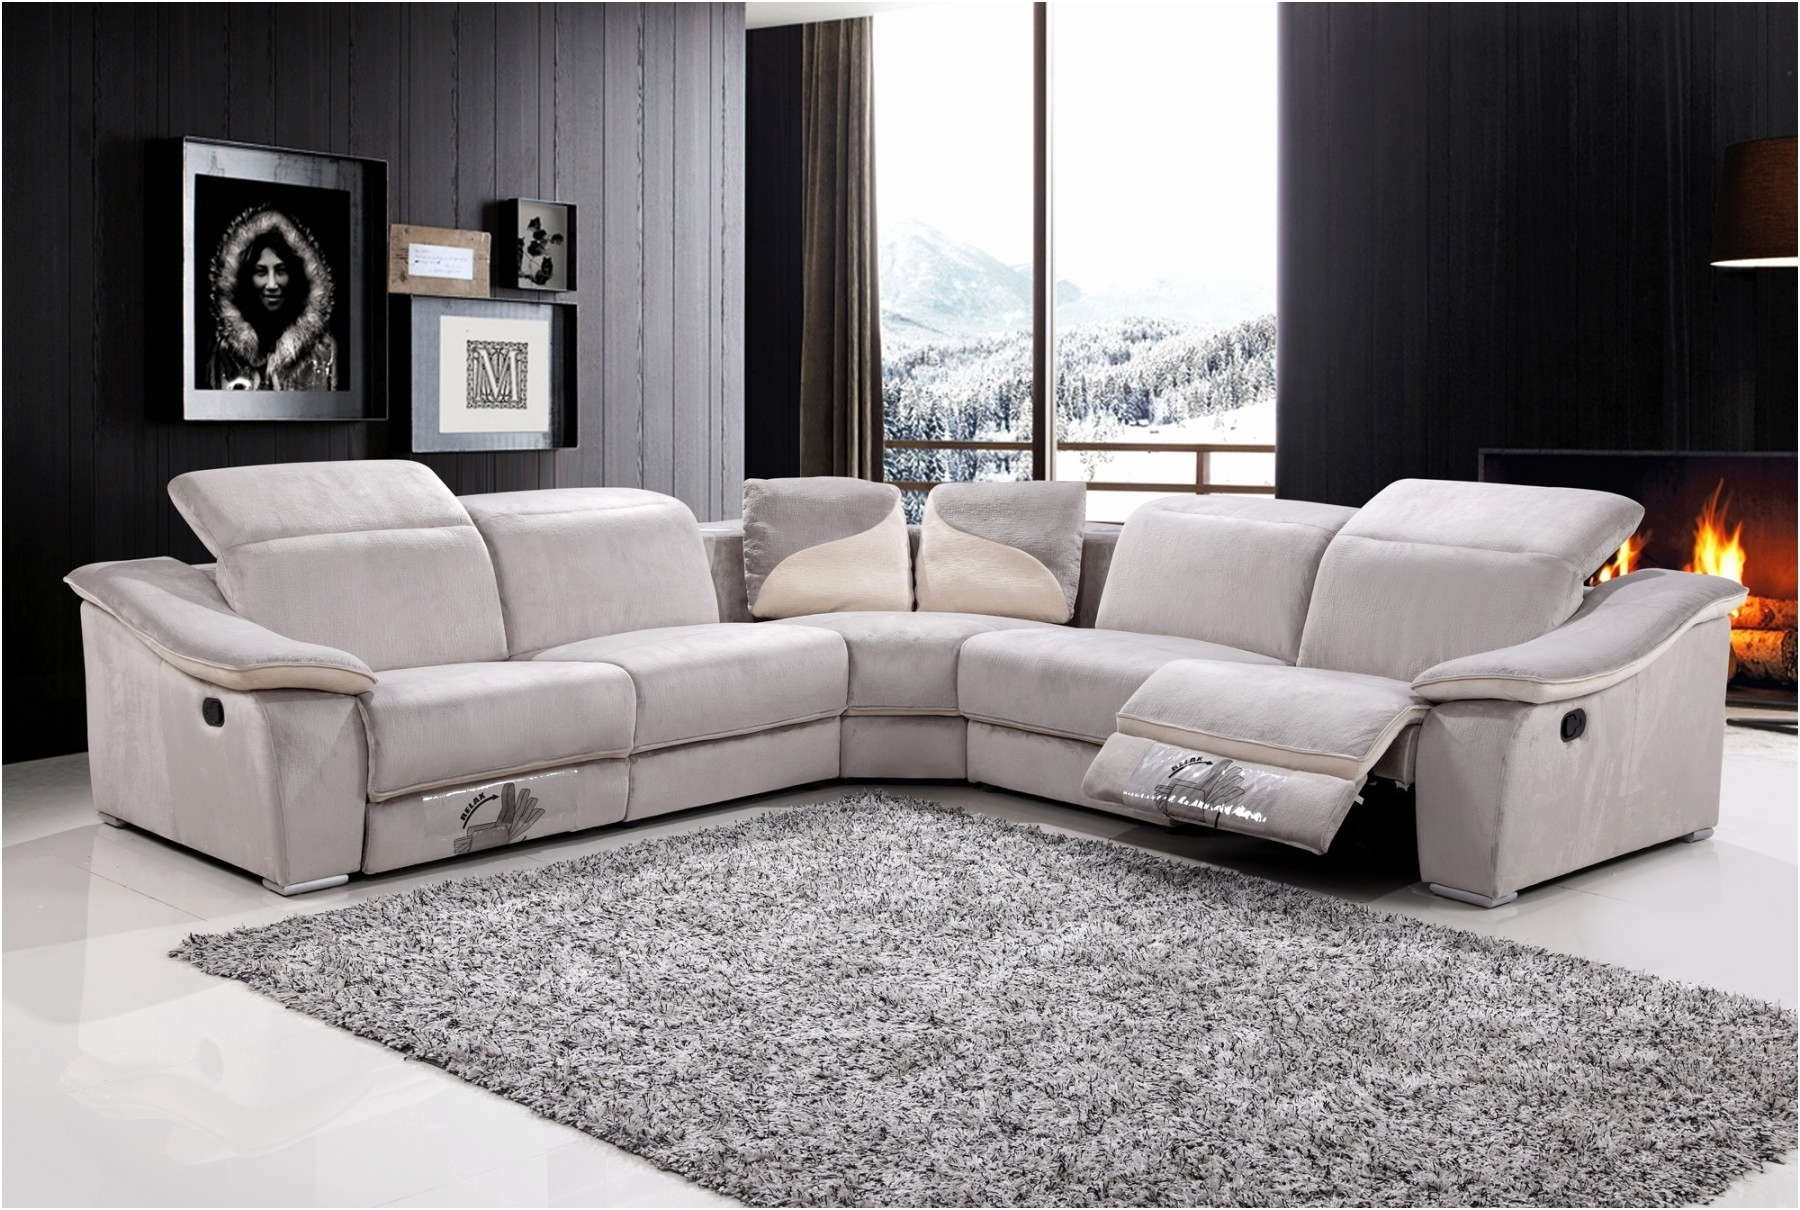 Bay Area Sofa Fresh The Most Popular Best Quality Sectional Sofa 95 With Regard To Quality Sectional Sofas (View 7 of 10)